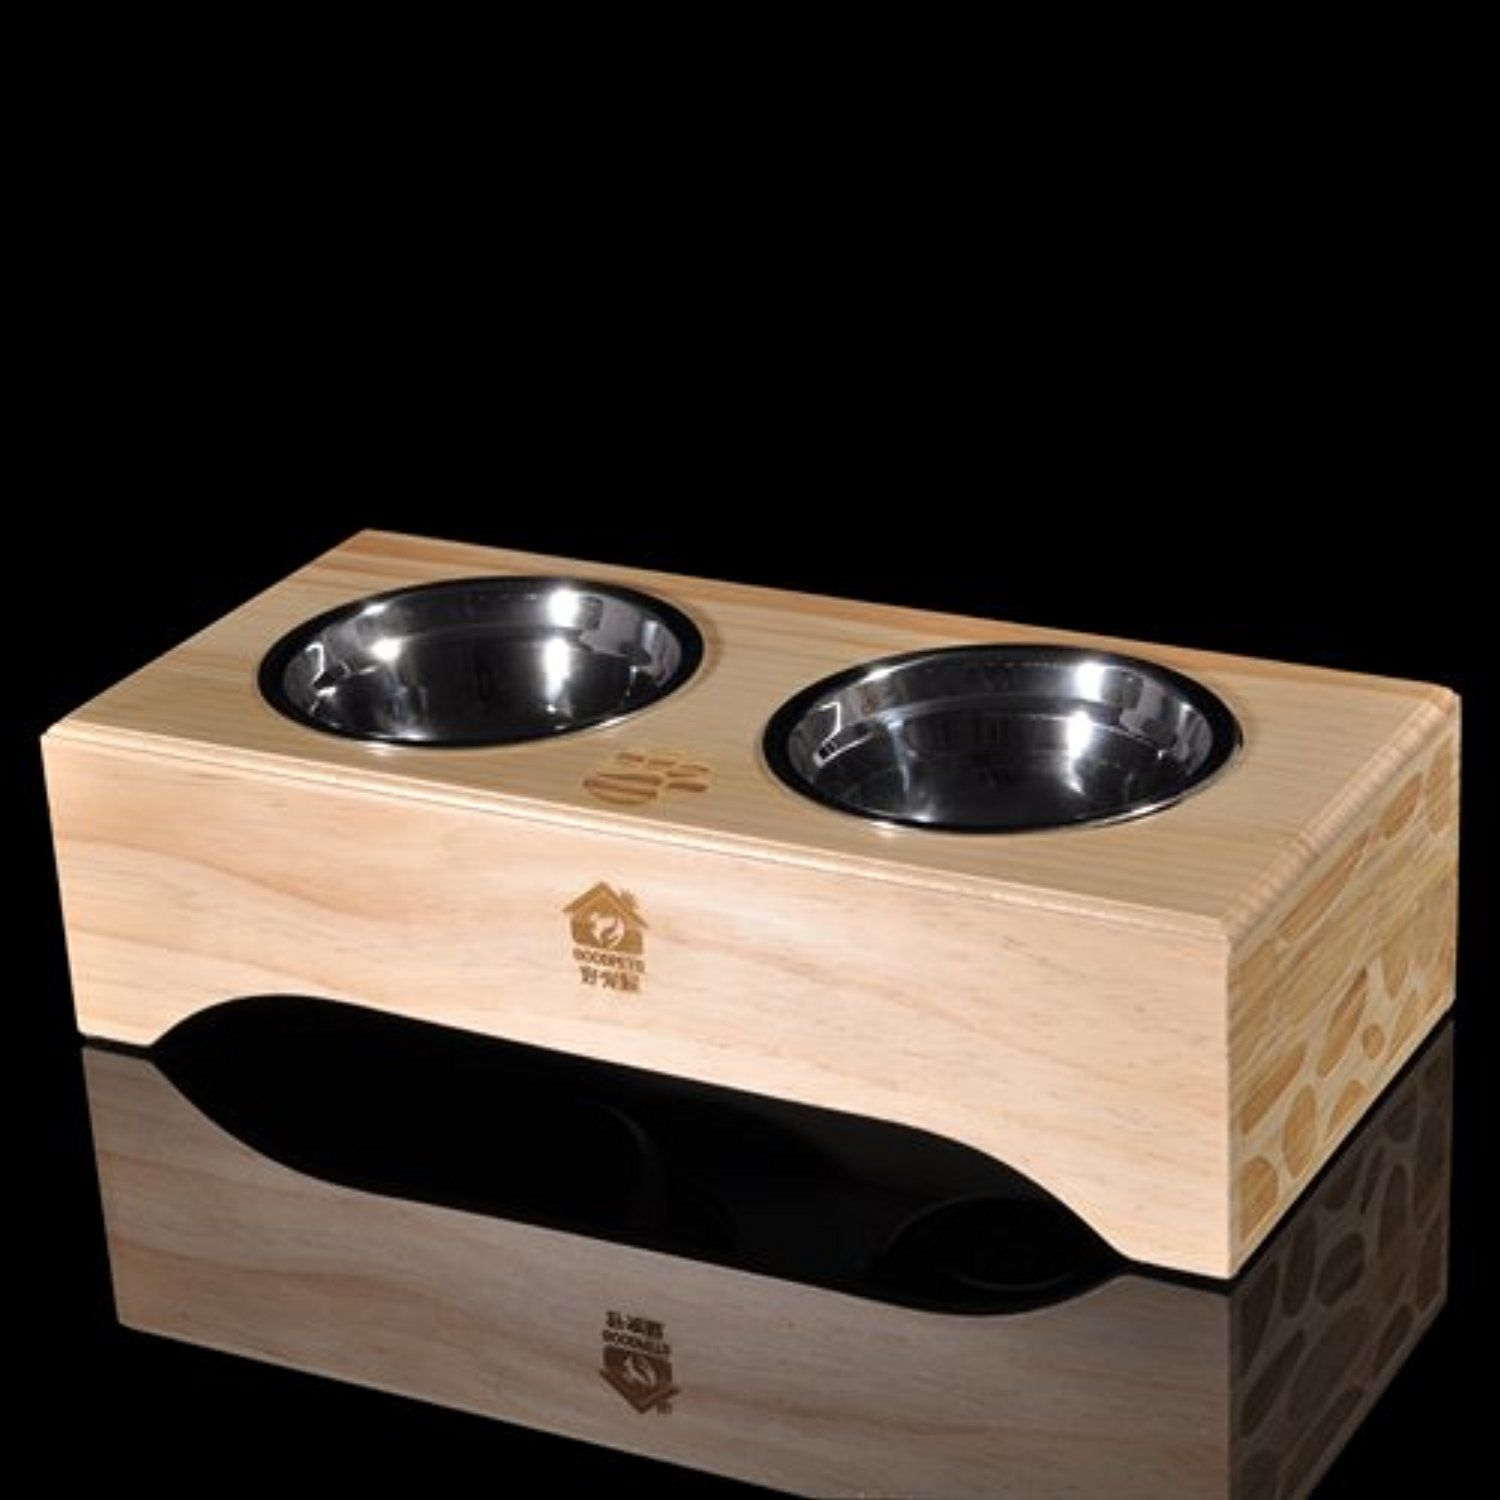 Premium Elevated Dog And Cat Wood Diner Pet Feeder Food Bowls Raised Stand Wooden Dining Table Platform Feeding Station With Two Double Stainless Steel